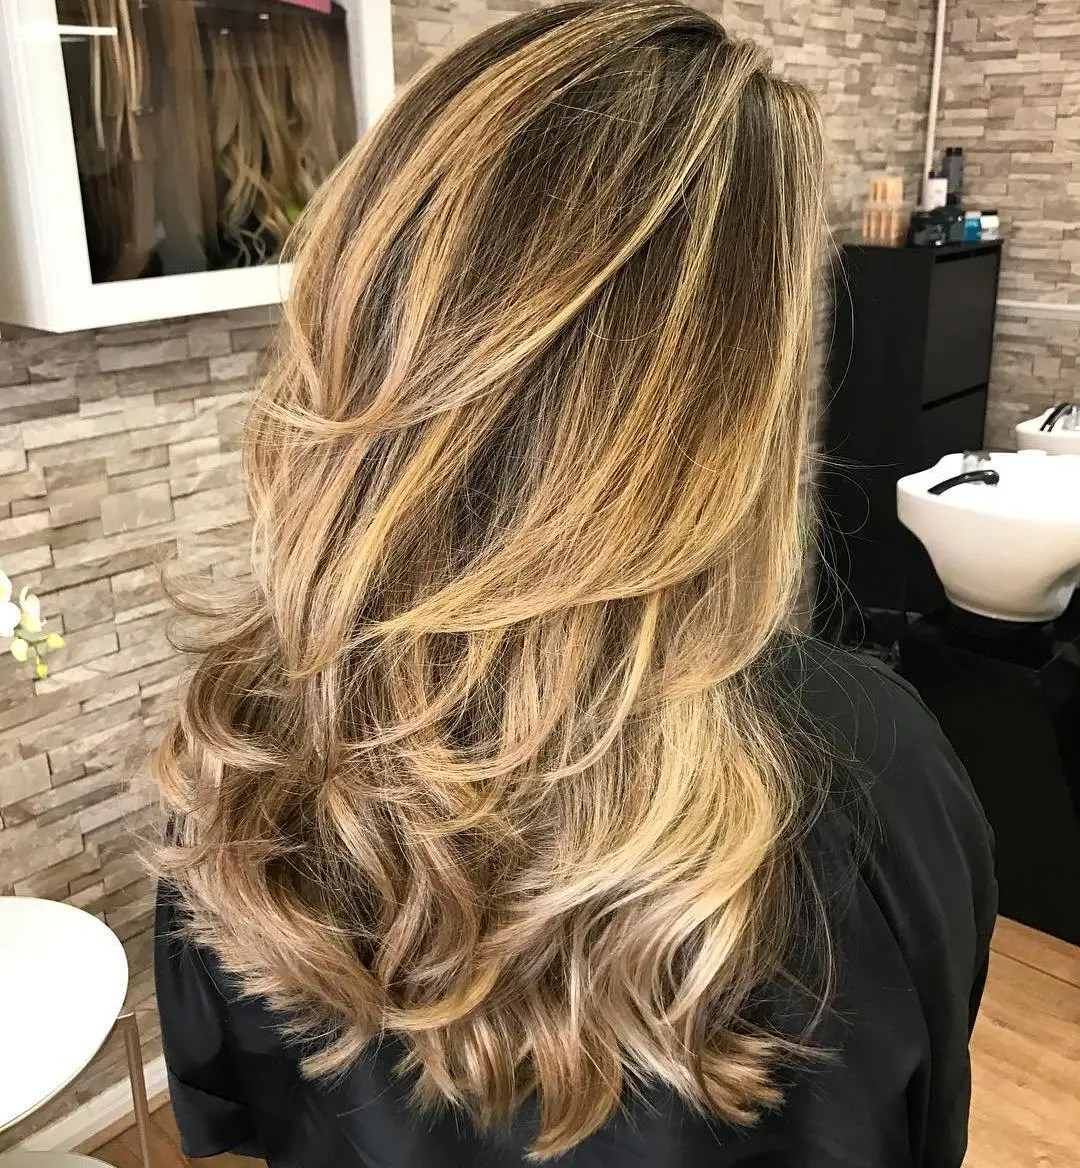 Curled Hairstyle for Long Thin Hair